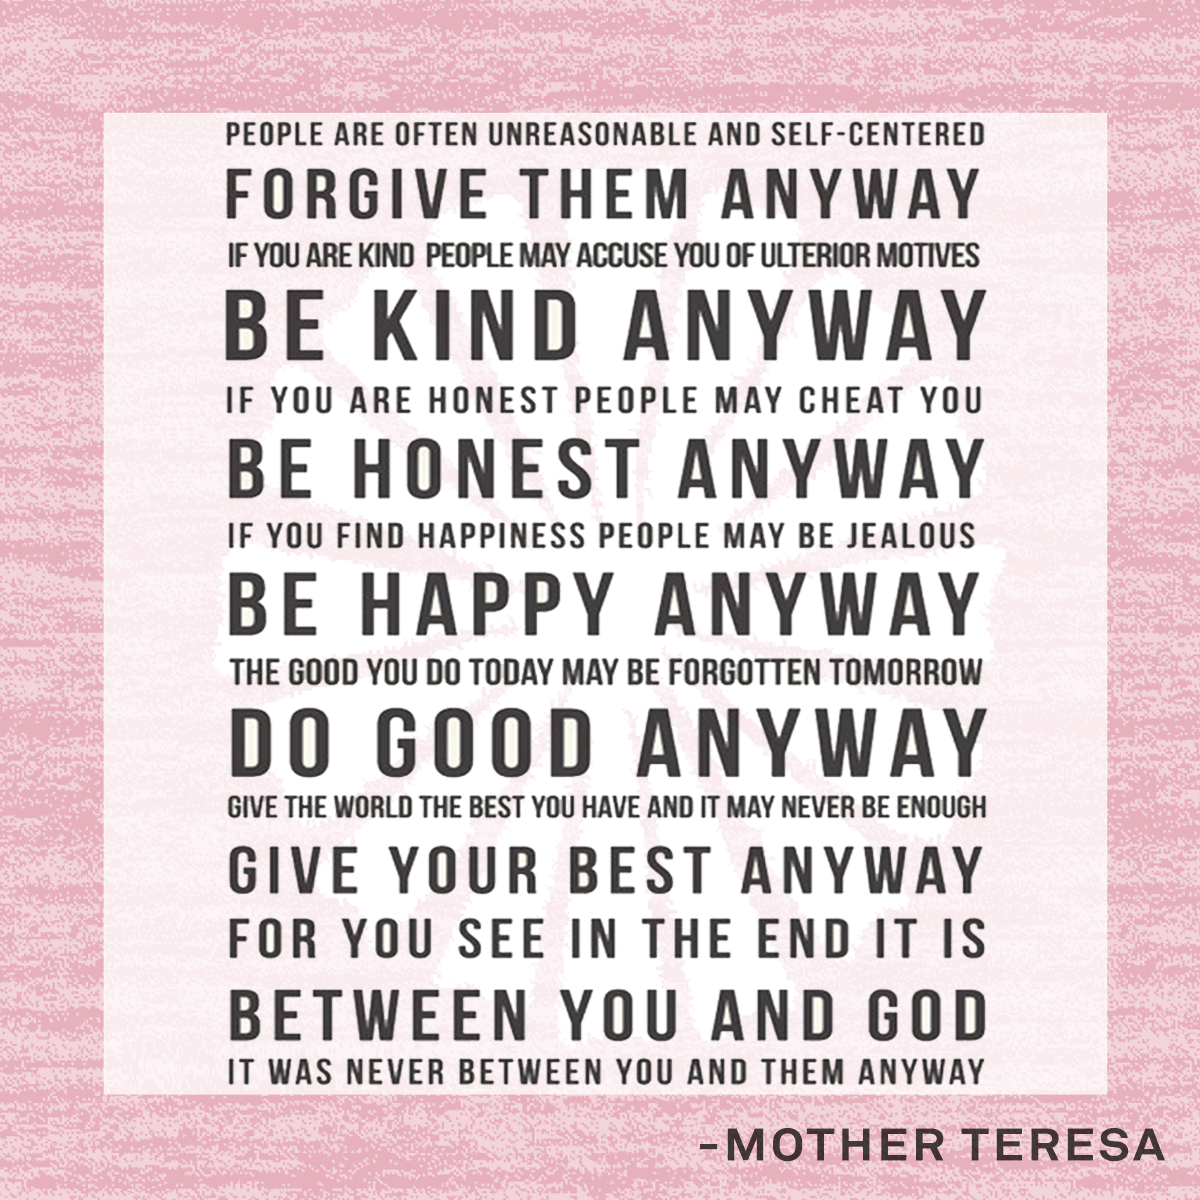 People are often unreasonable google search quotes pinterest inspirational mother teresa quote do it anyway art print unique christmas gift for mom best friend grandparents thecheapjerseys Choice Image